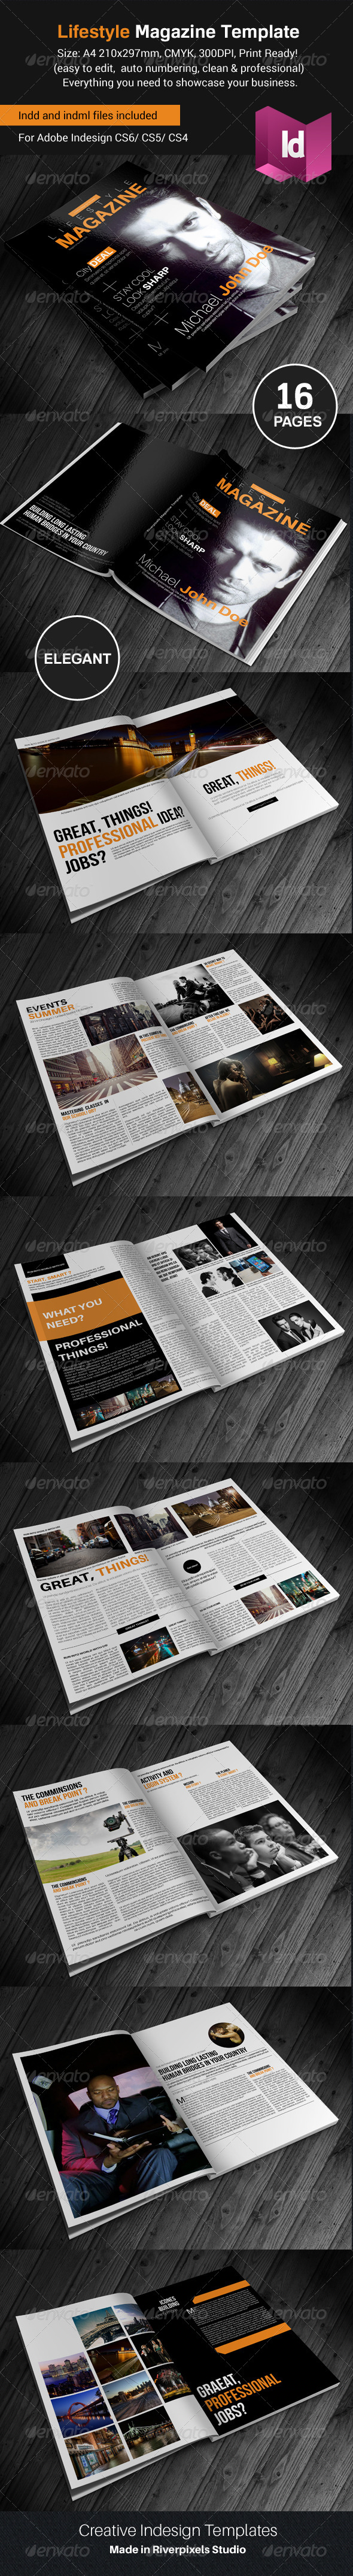 GraphicRiver Creative Lifestyle Magazine Template 8204271